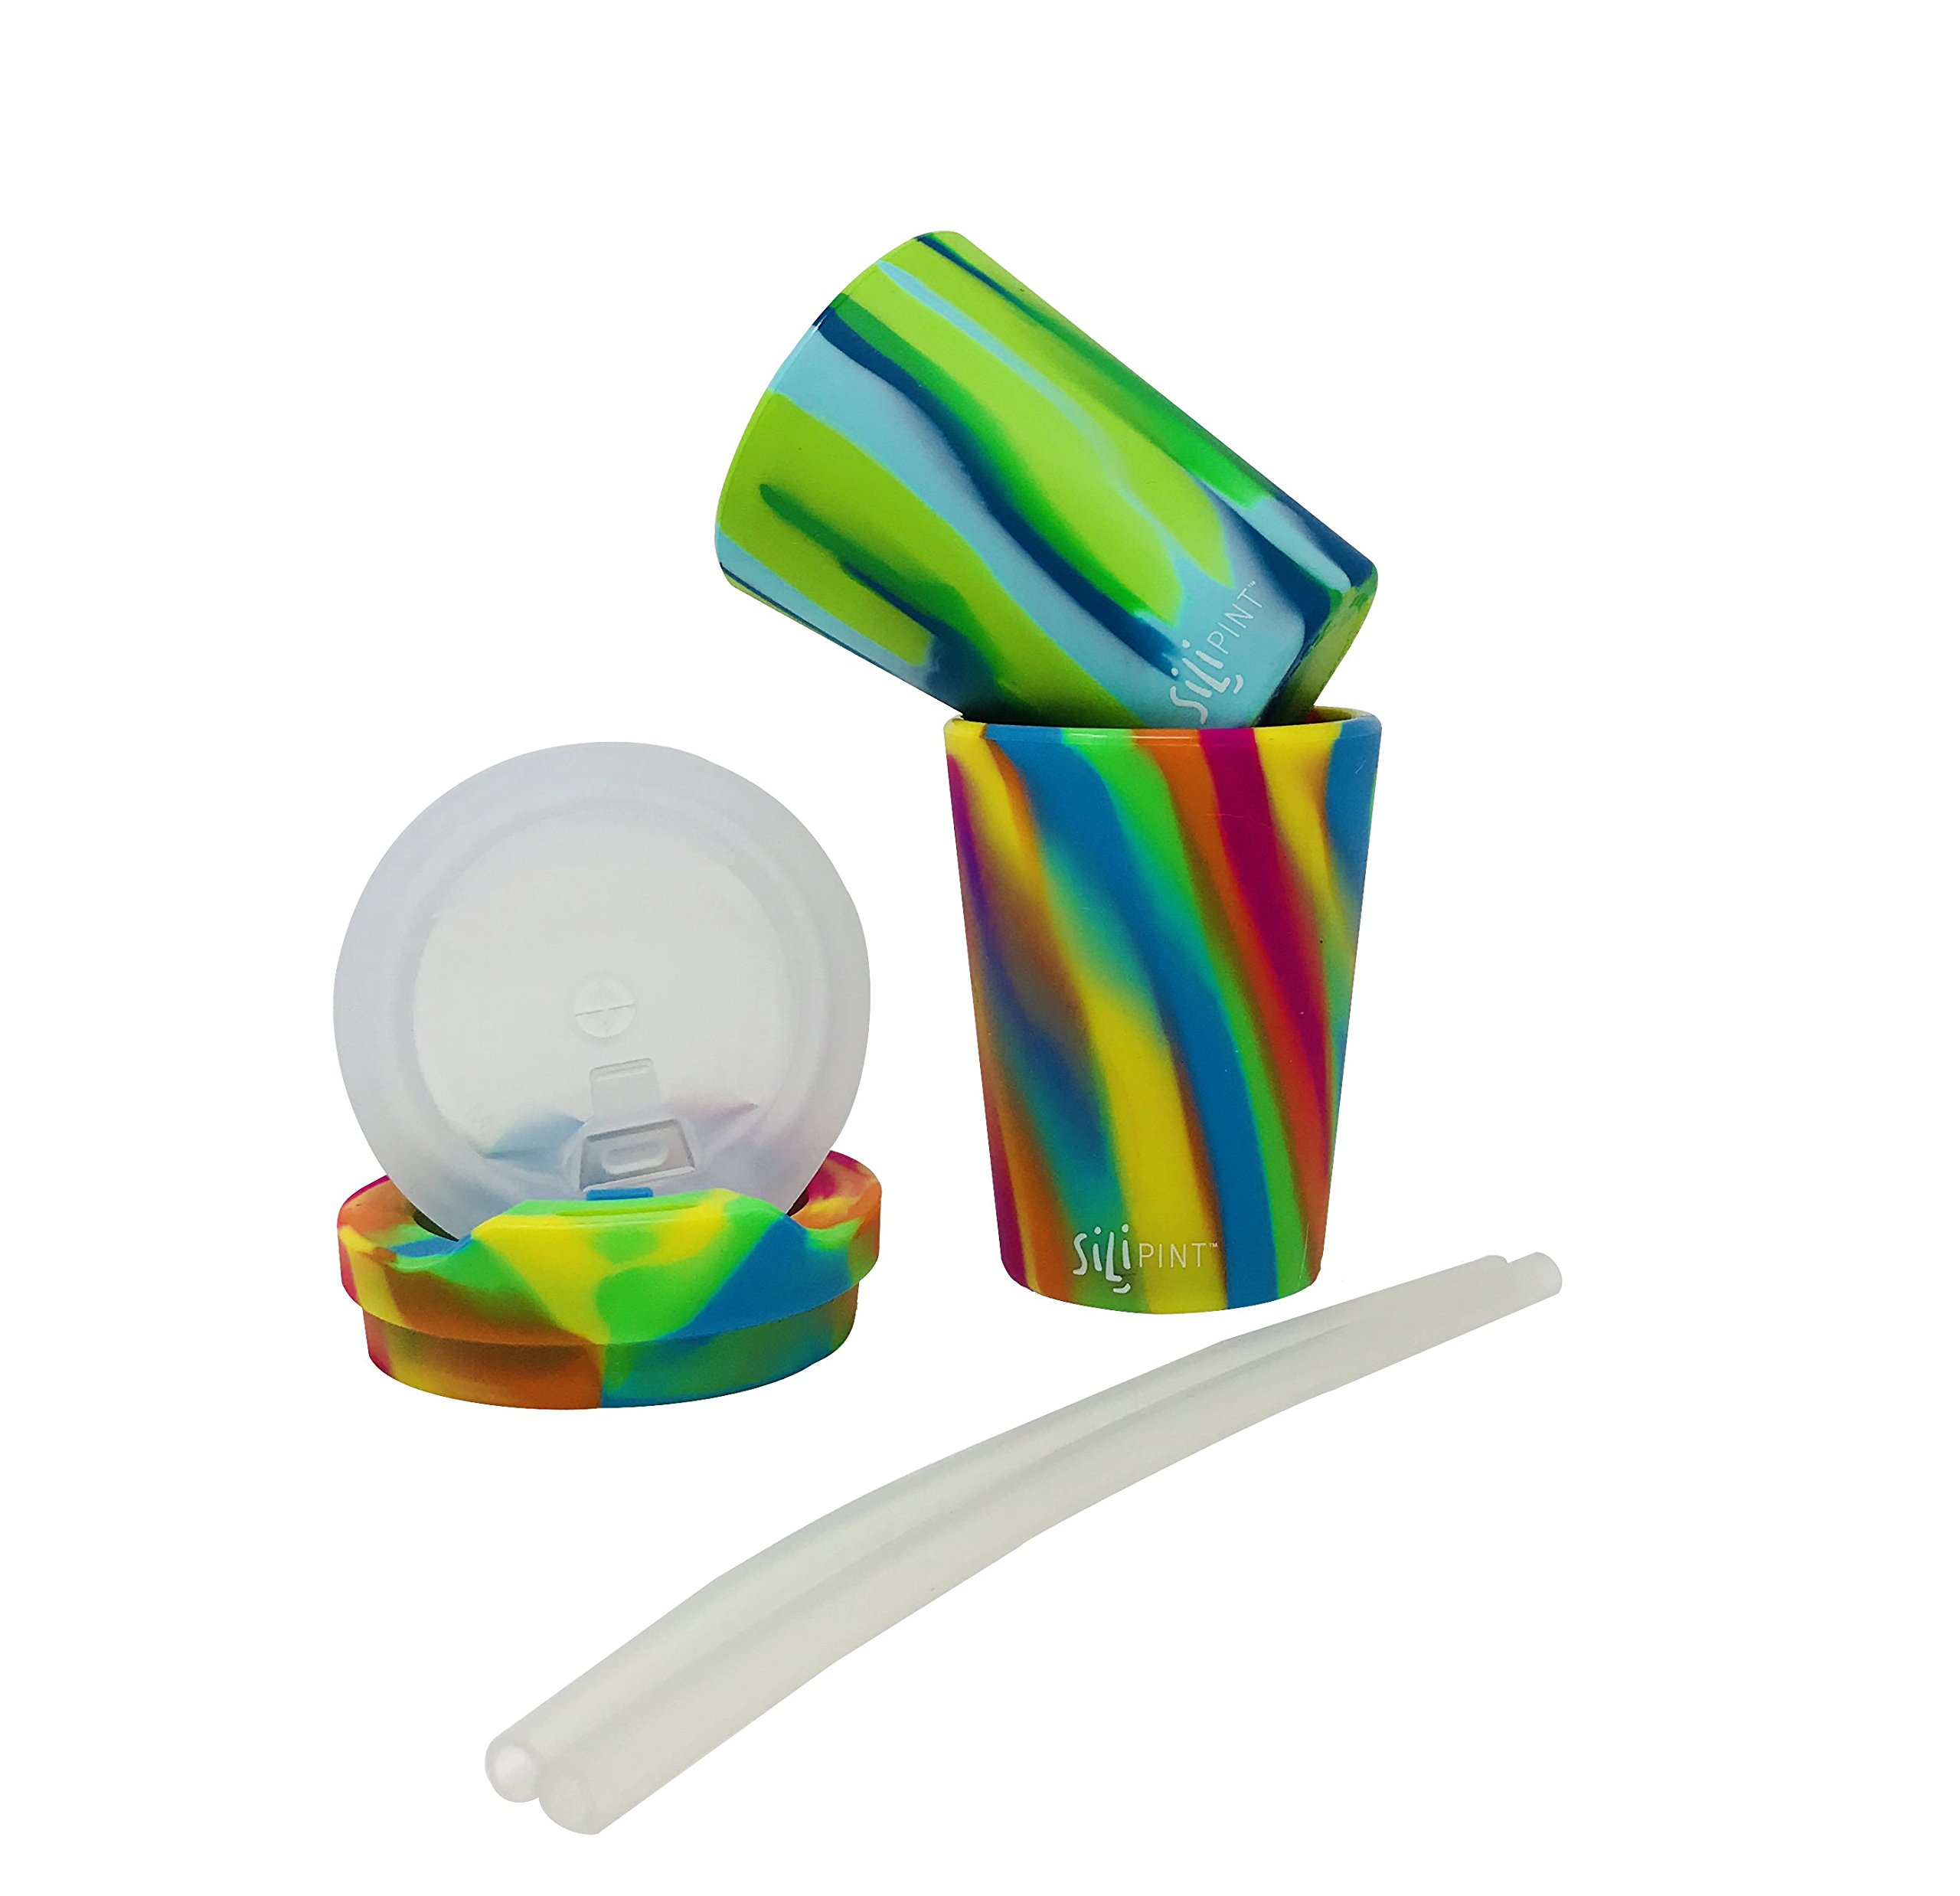 Silipint Silicone Kids Cups Sea Swirl & Hippie Hops, U.S. Patented, BPA-Free, Unbreakable, Sealable Lid, Silistraws Included - Safe For Car Rides, Camping, Sports, Life! (2 Cups/Lids and Straws)